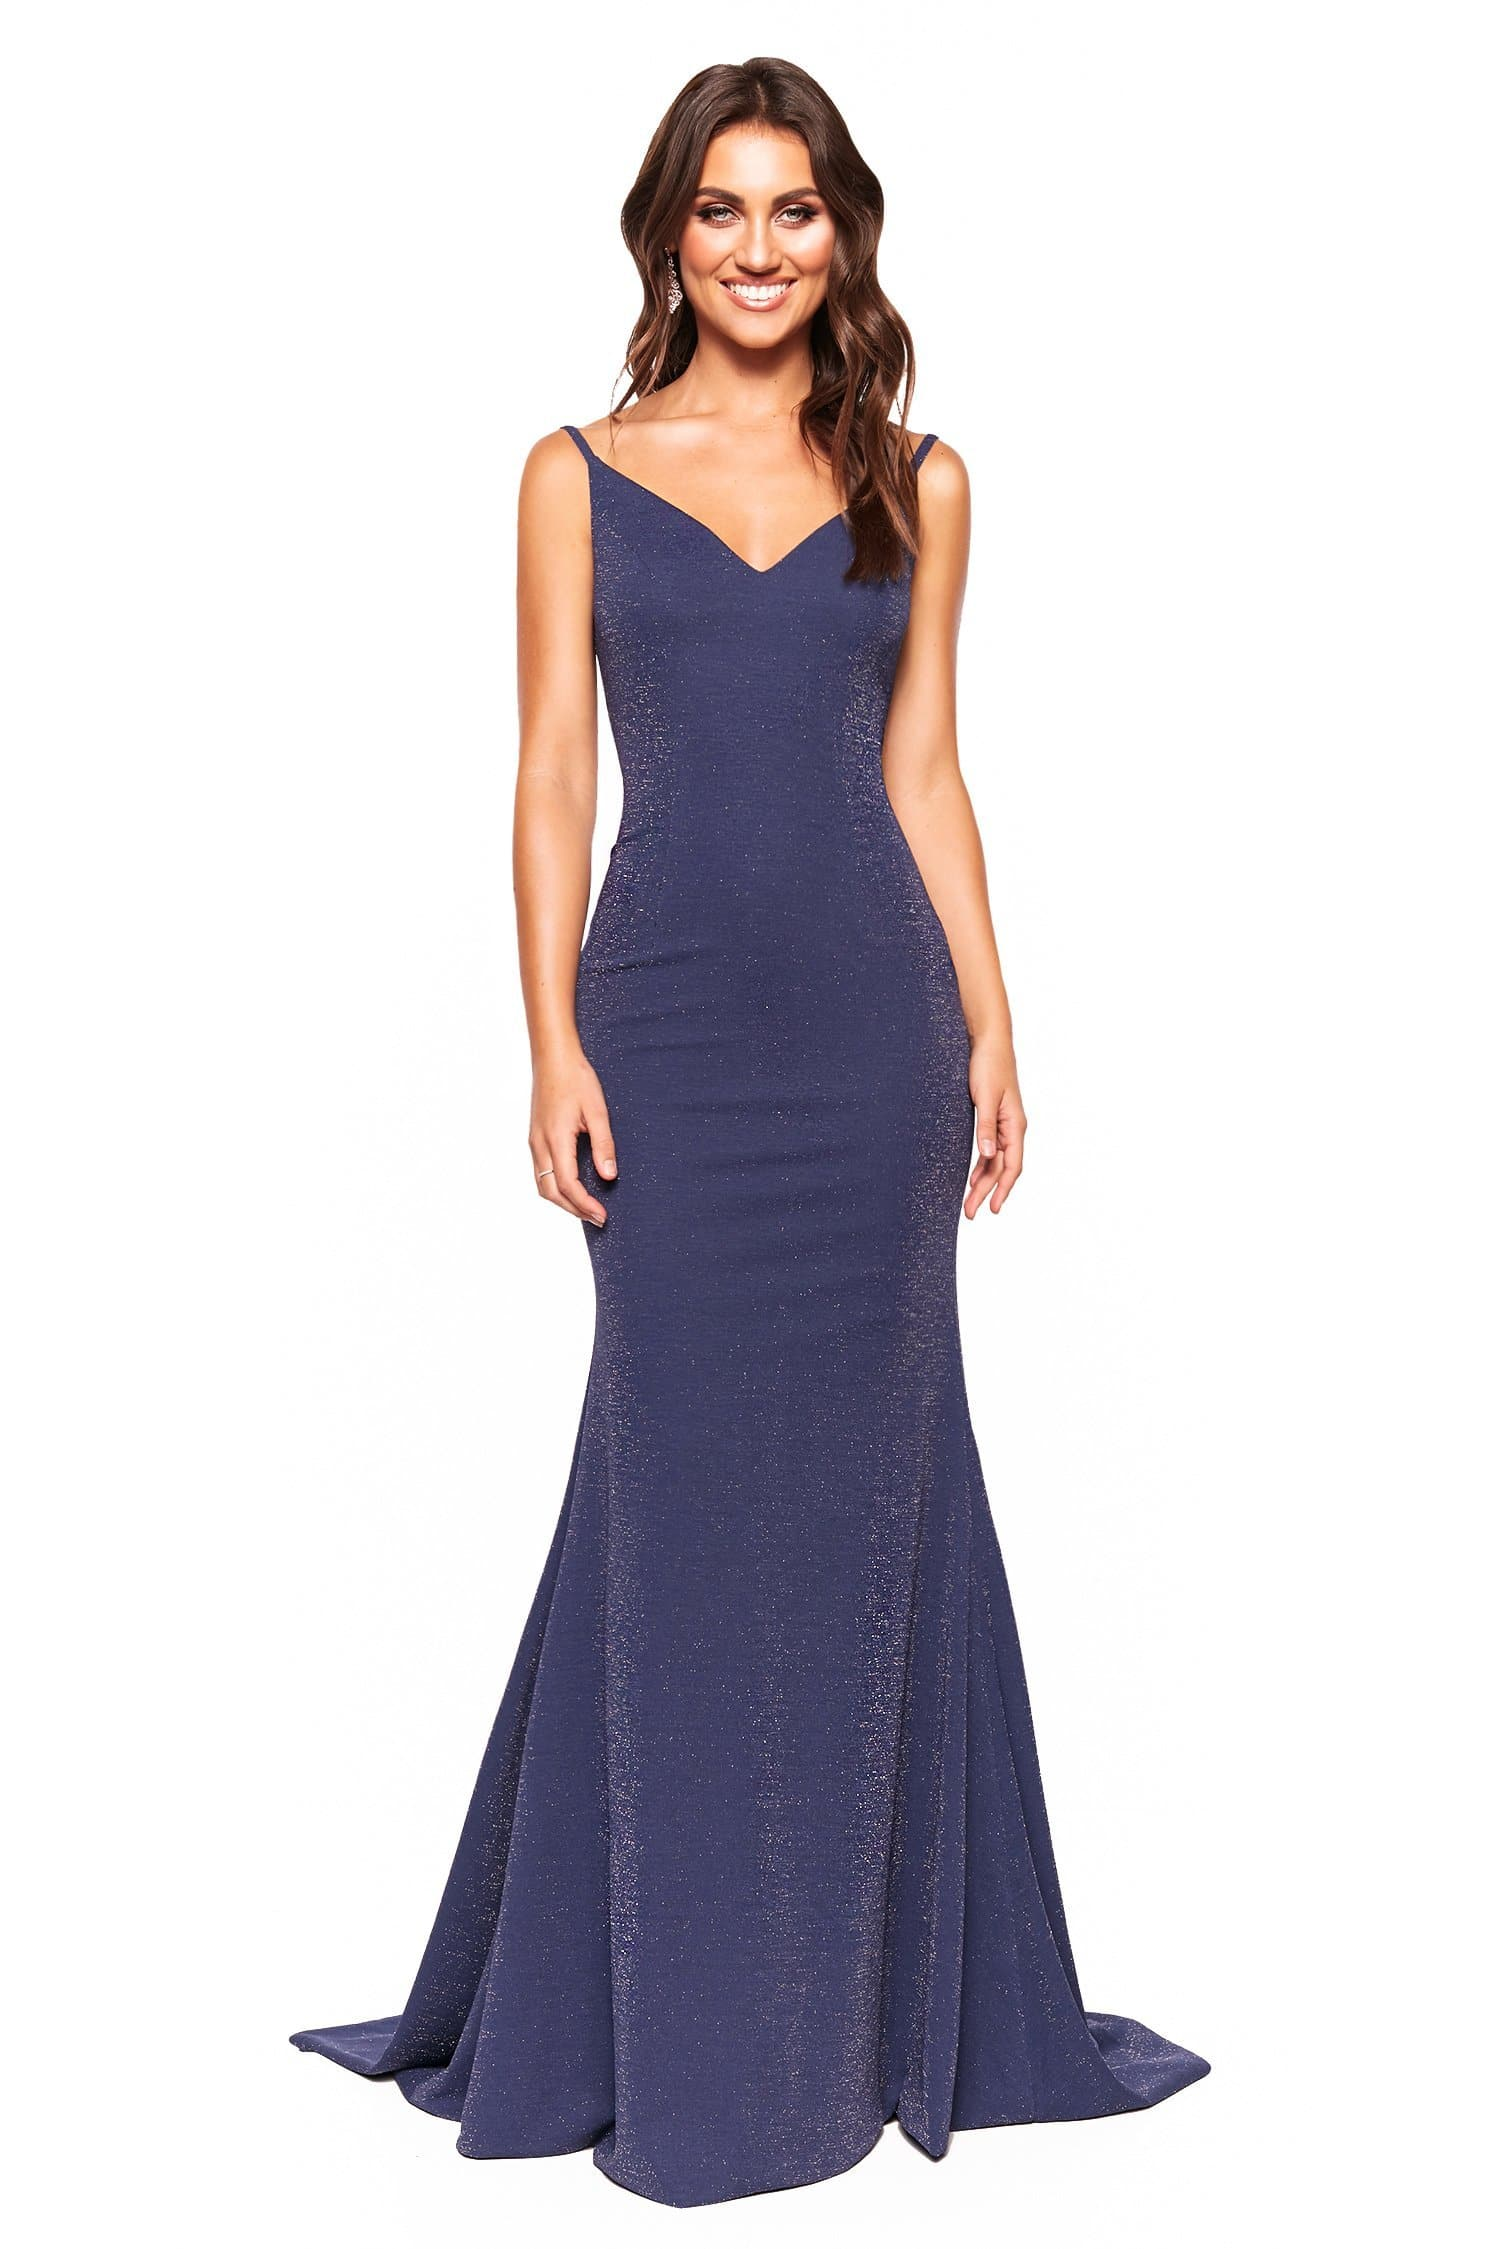 A&N Luxe Pia - Navy Shimmering Mermaid V-Neck Backless Gown